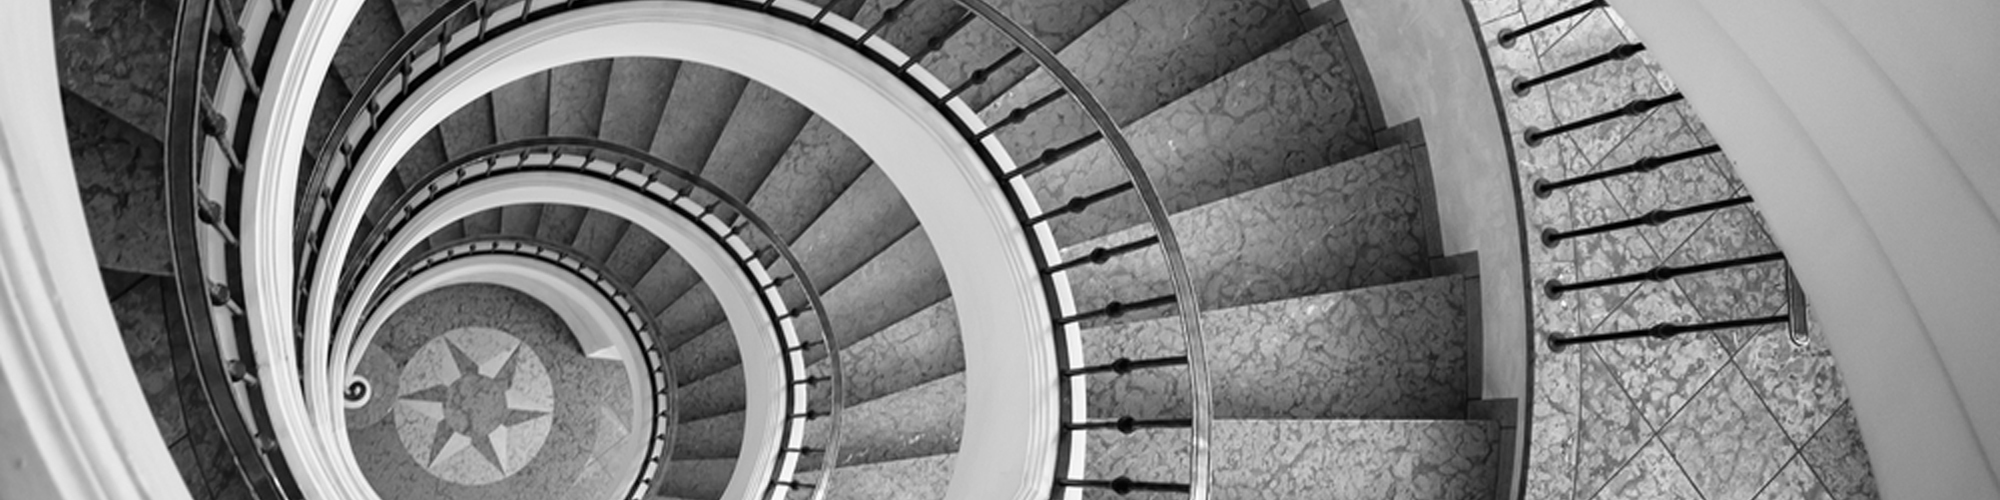 spiralstairs_good